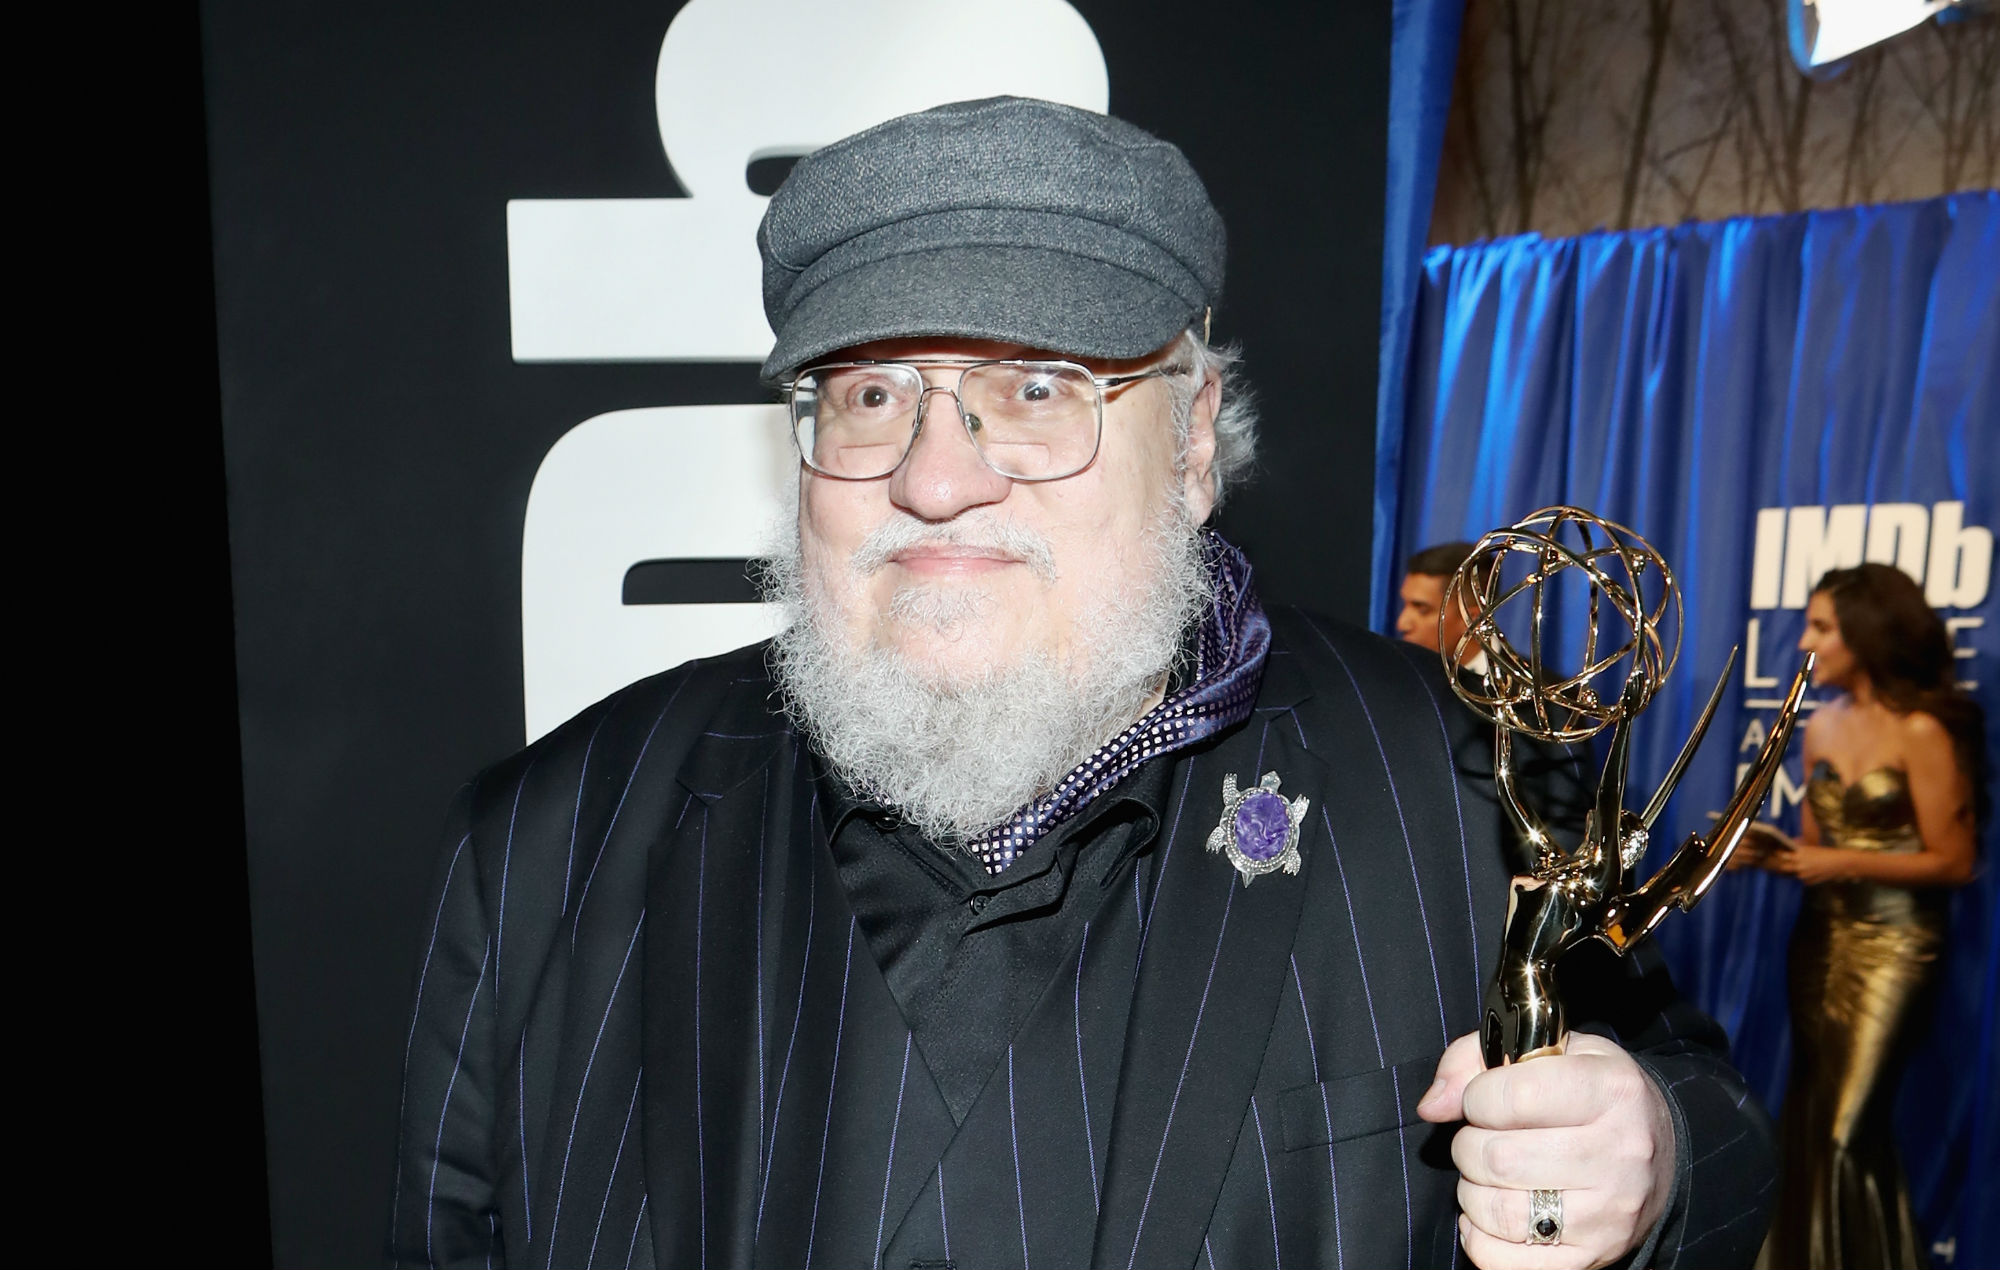 George RR Martin Game of Thrones